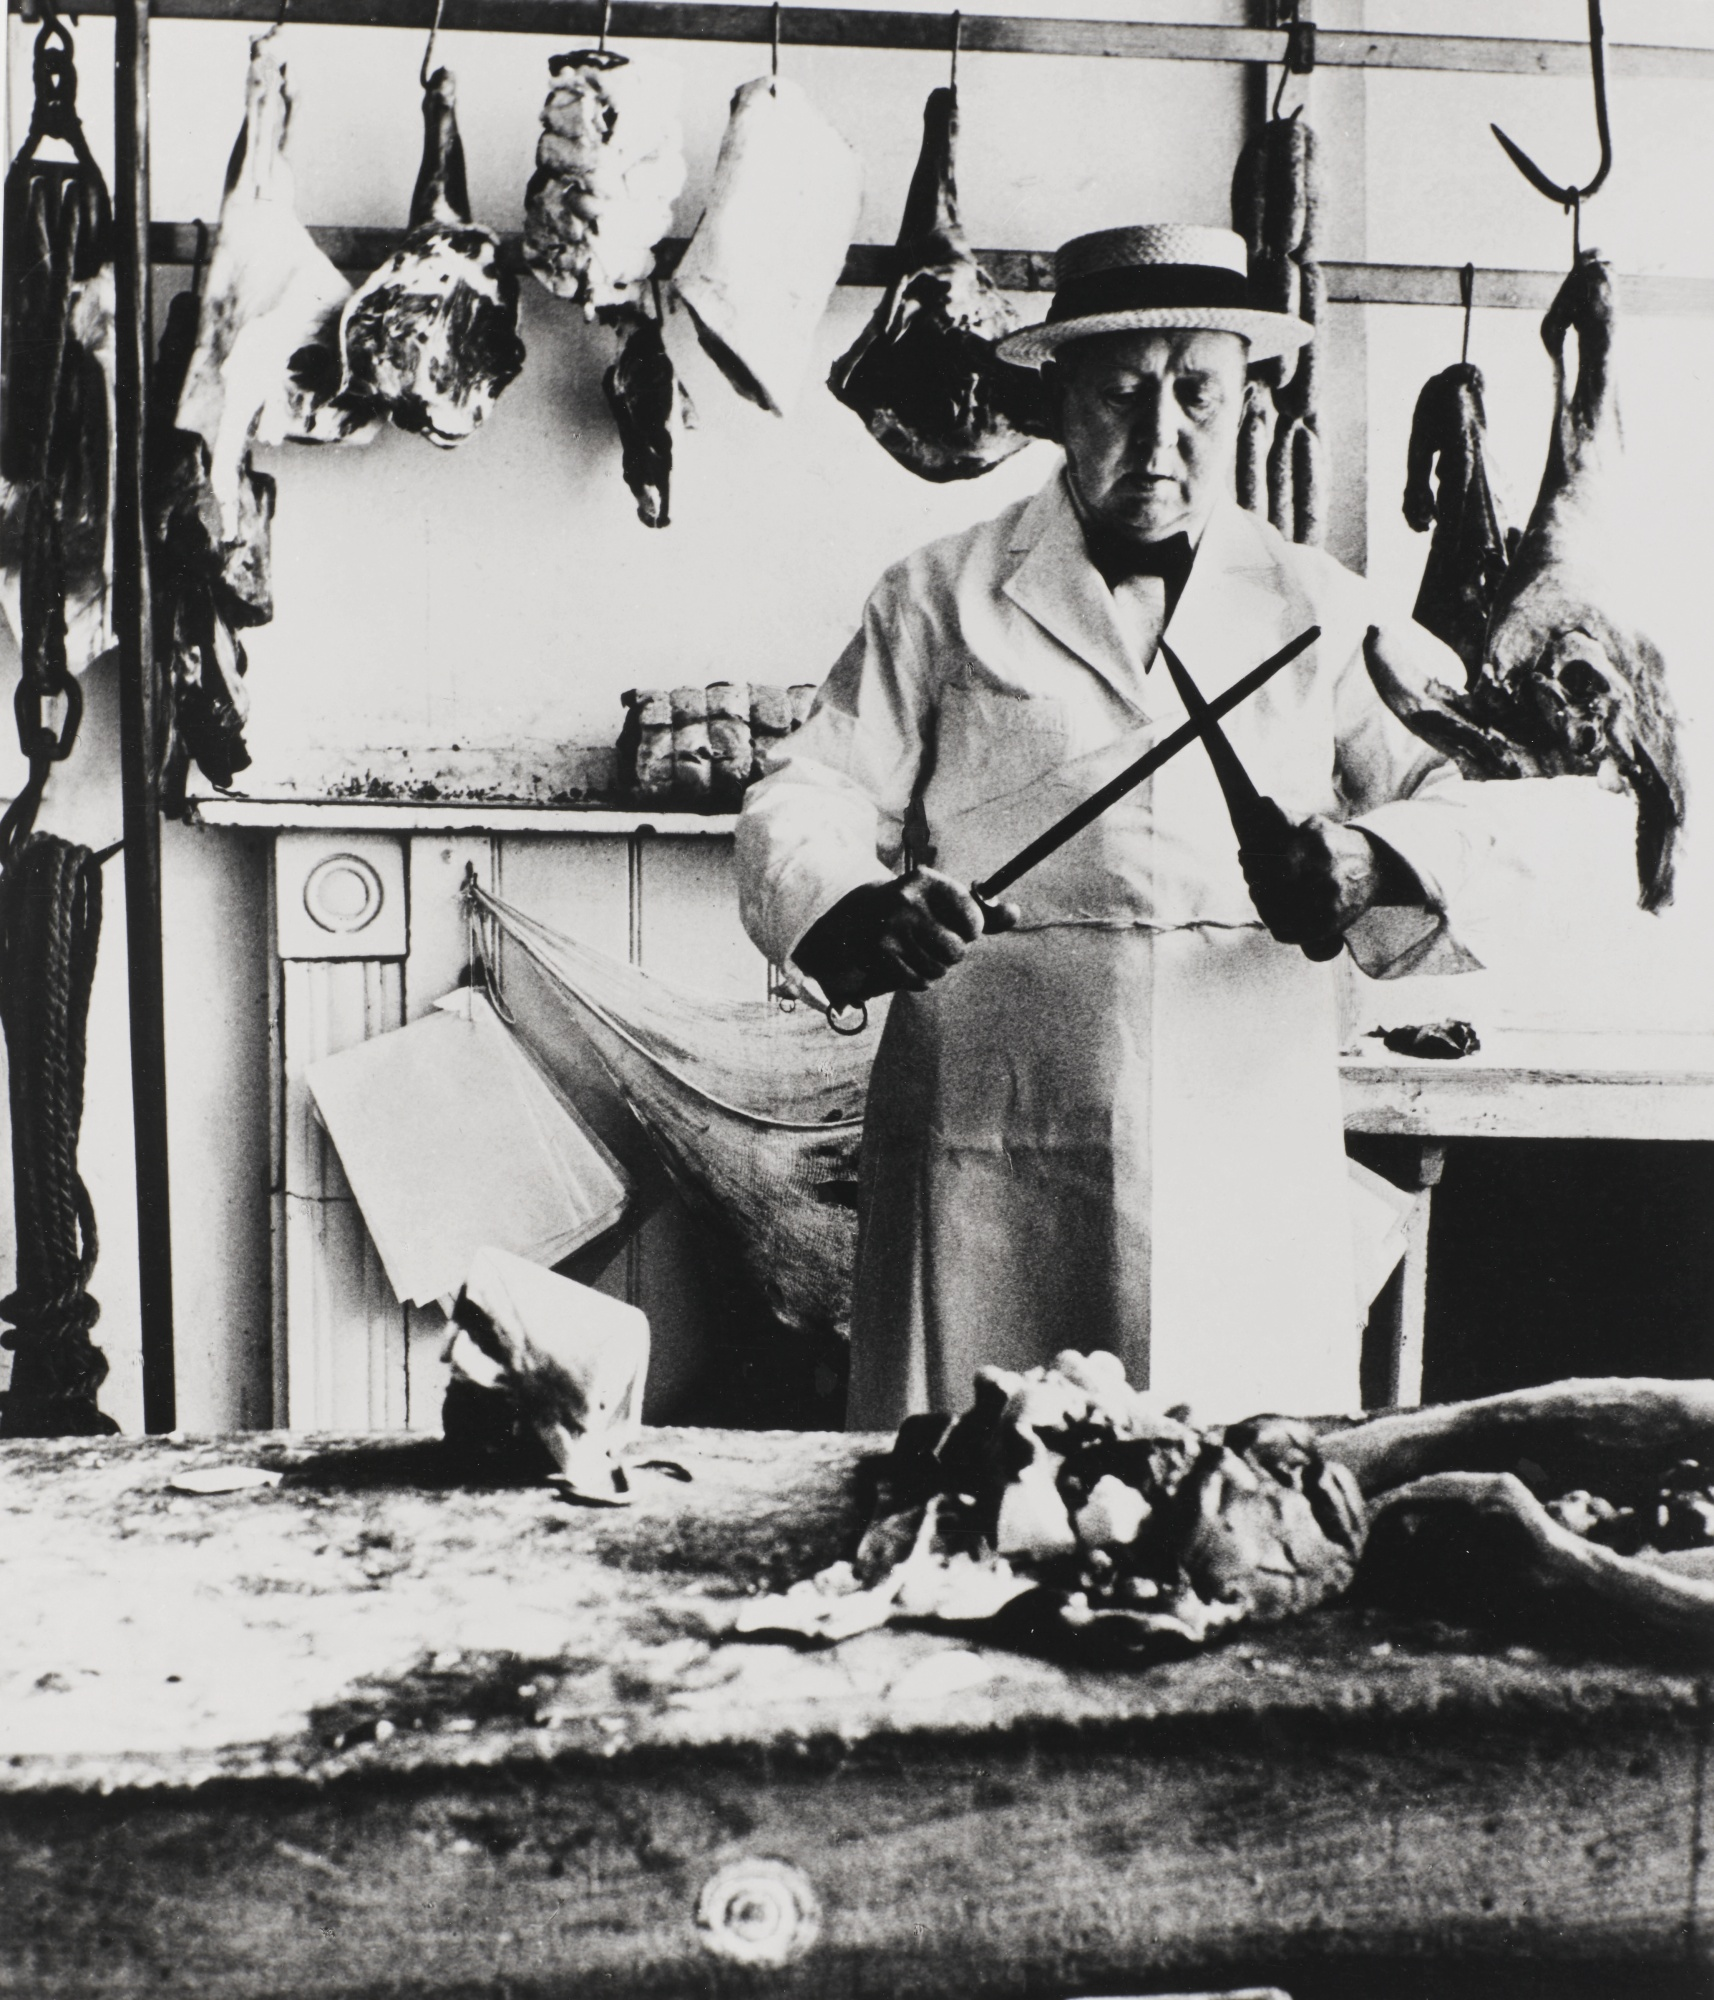 Bill Brandt-Butcher At Notting Hill Gate London 1932-